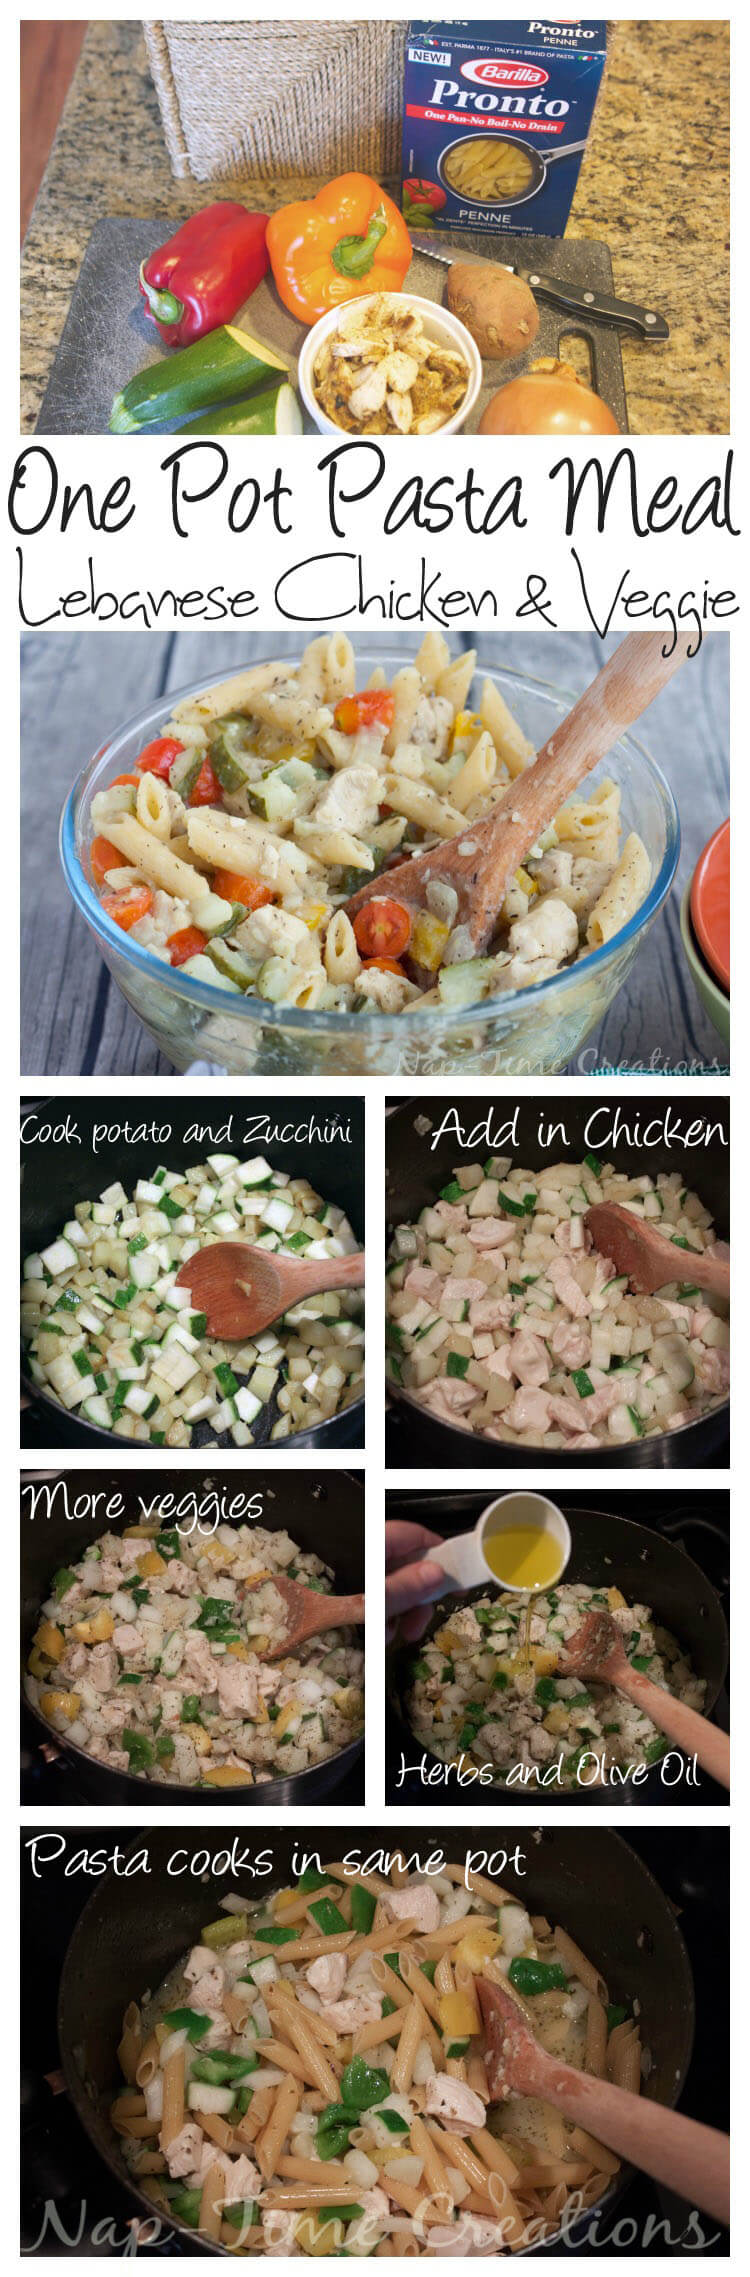 One Pot Lebanese Chicken pasta #OnePotPasta #ad #PMedia on Nap-Time Creations